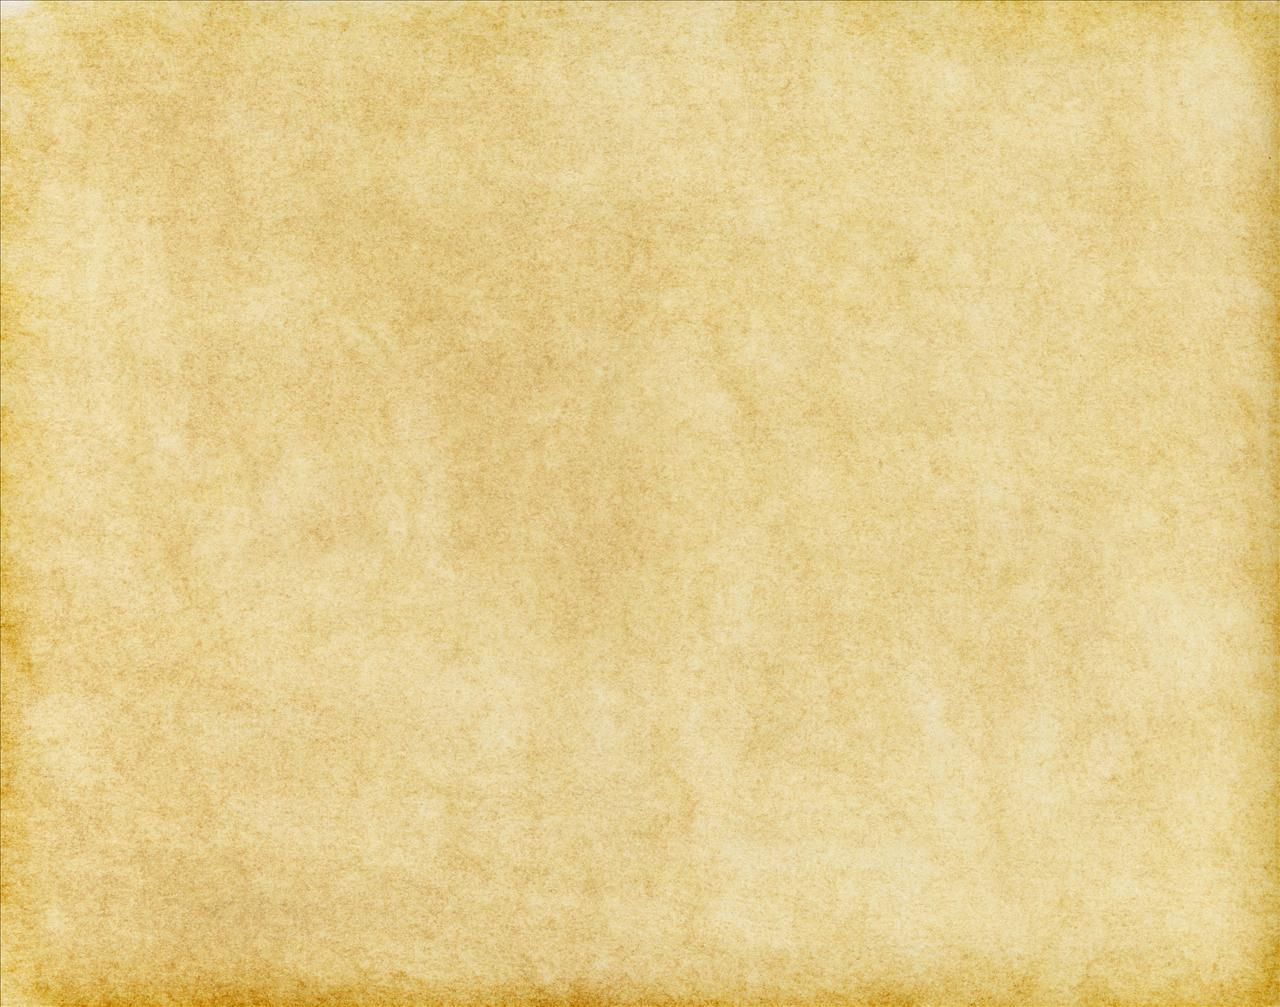 Texture Paper Old Battered Download Photo Image Background